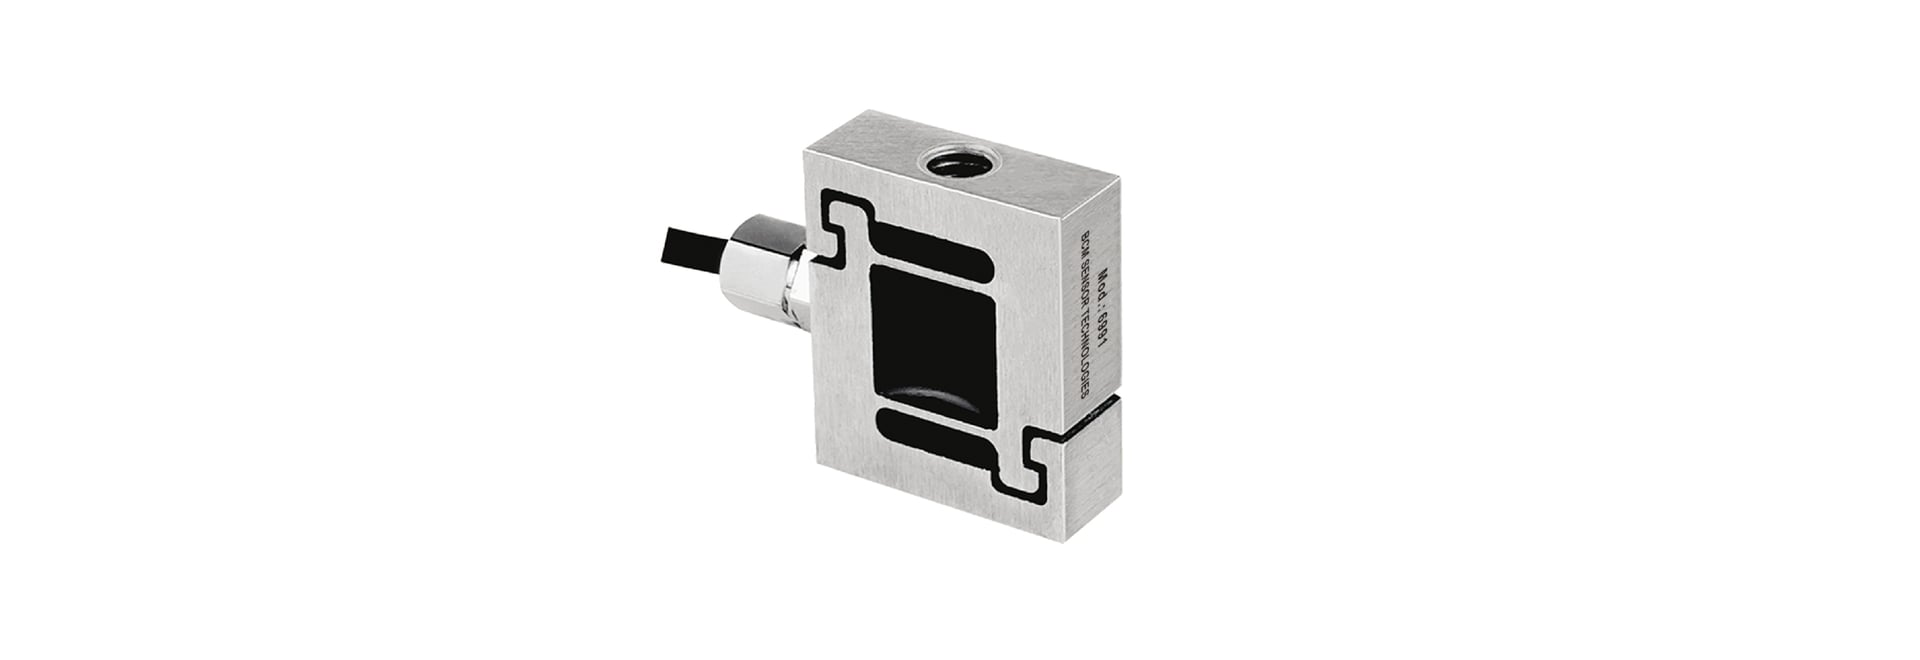 6991 Compact S-Type Force Transducers with Overload-Protection